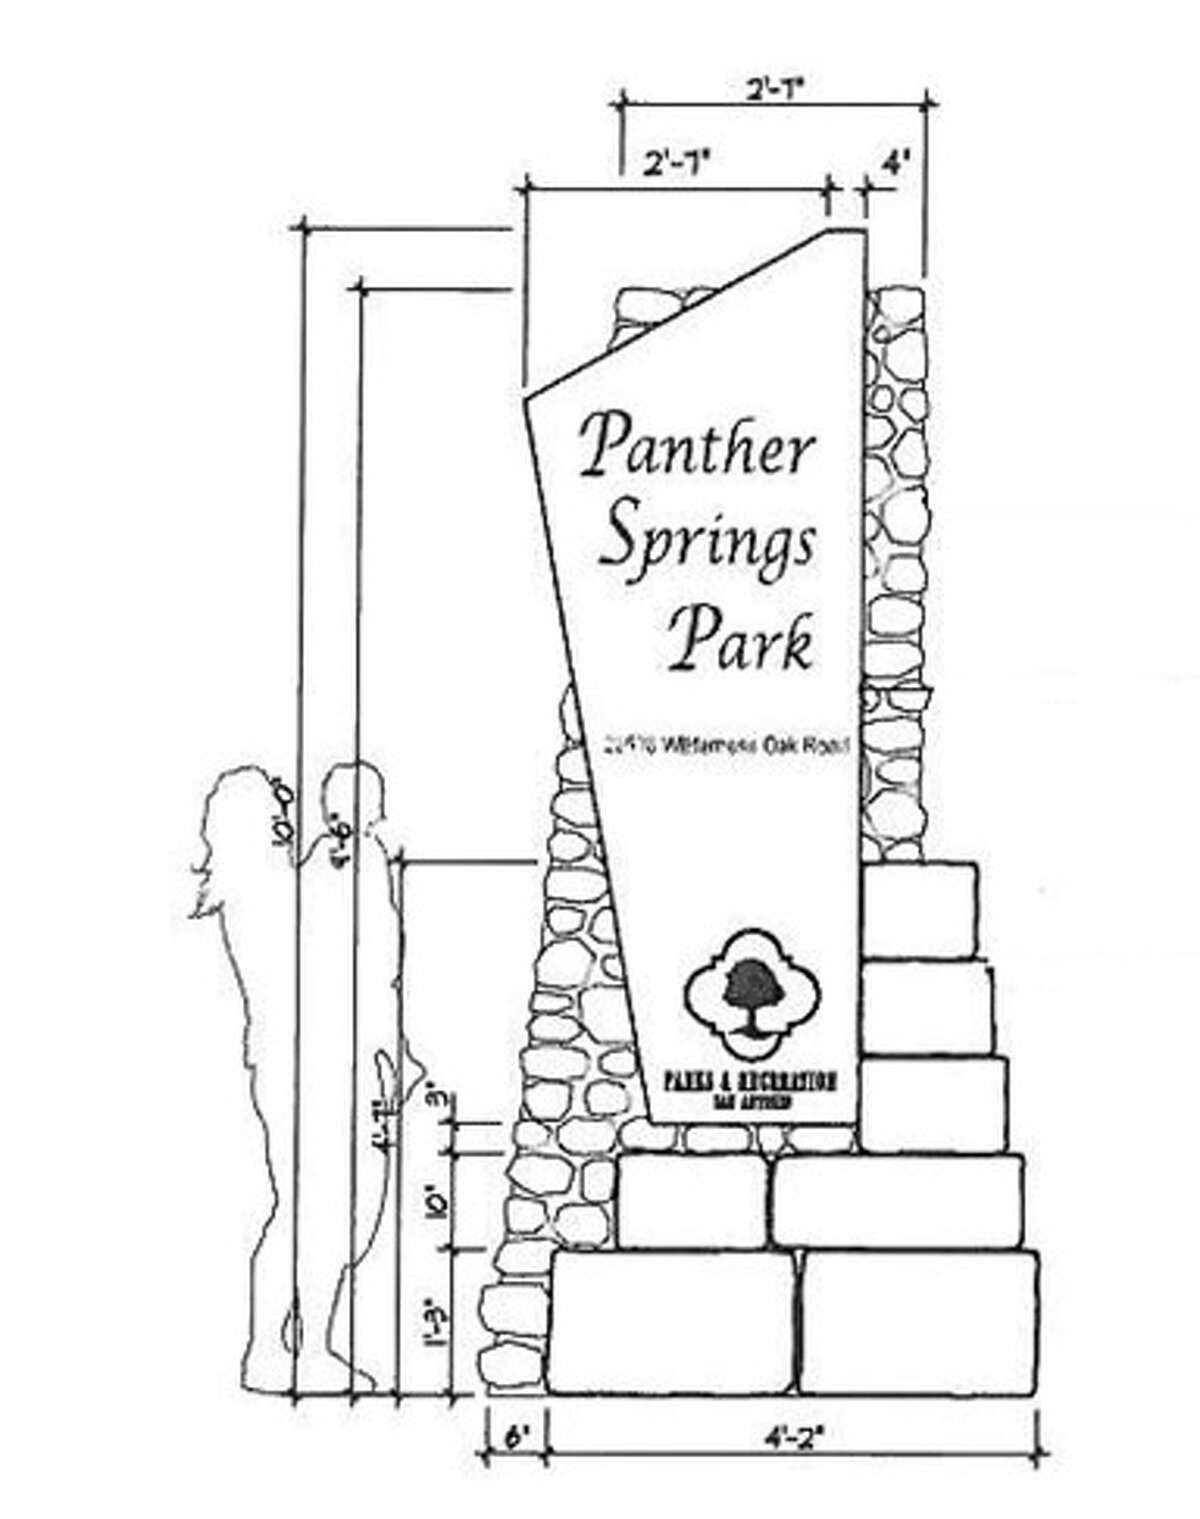 An illustration of the main entrance sign of Panther Springs Park.